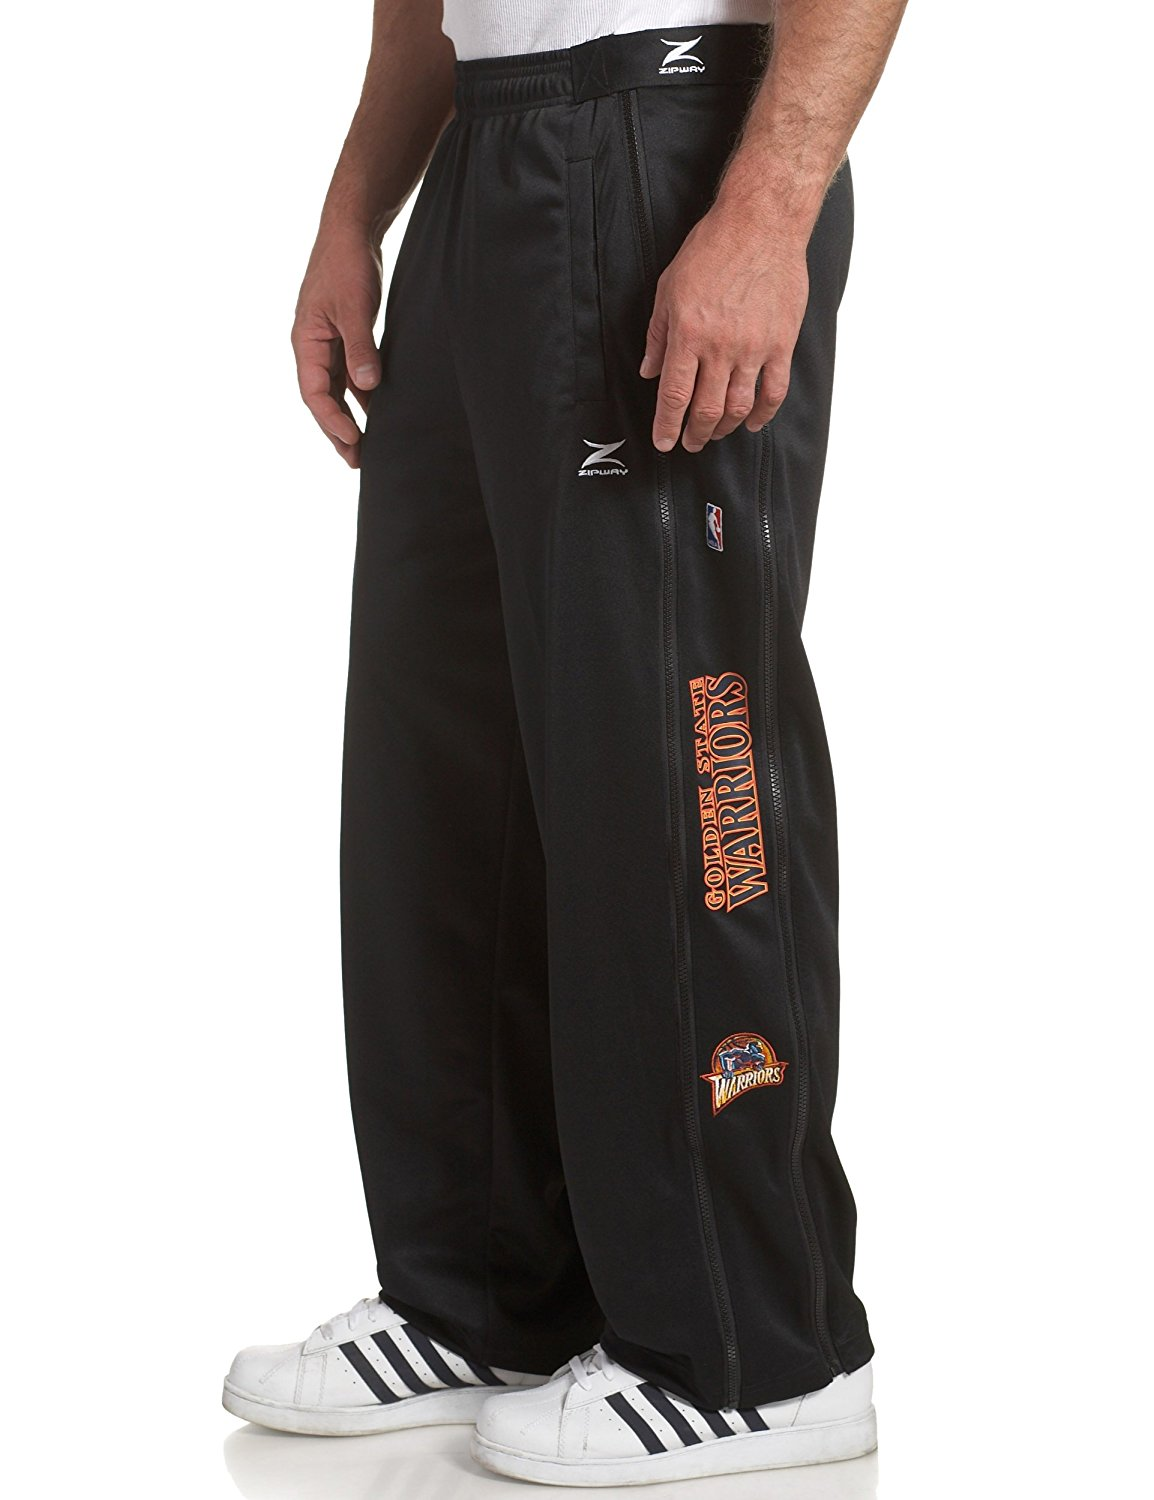 71575ab9e Get Quotations · Golden State Warriors NBA Team Panel Pant With Zipway Shell